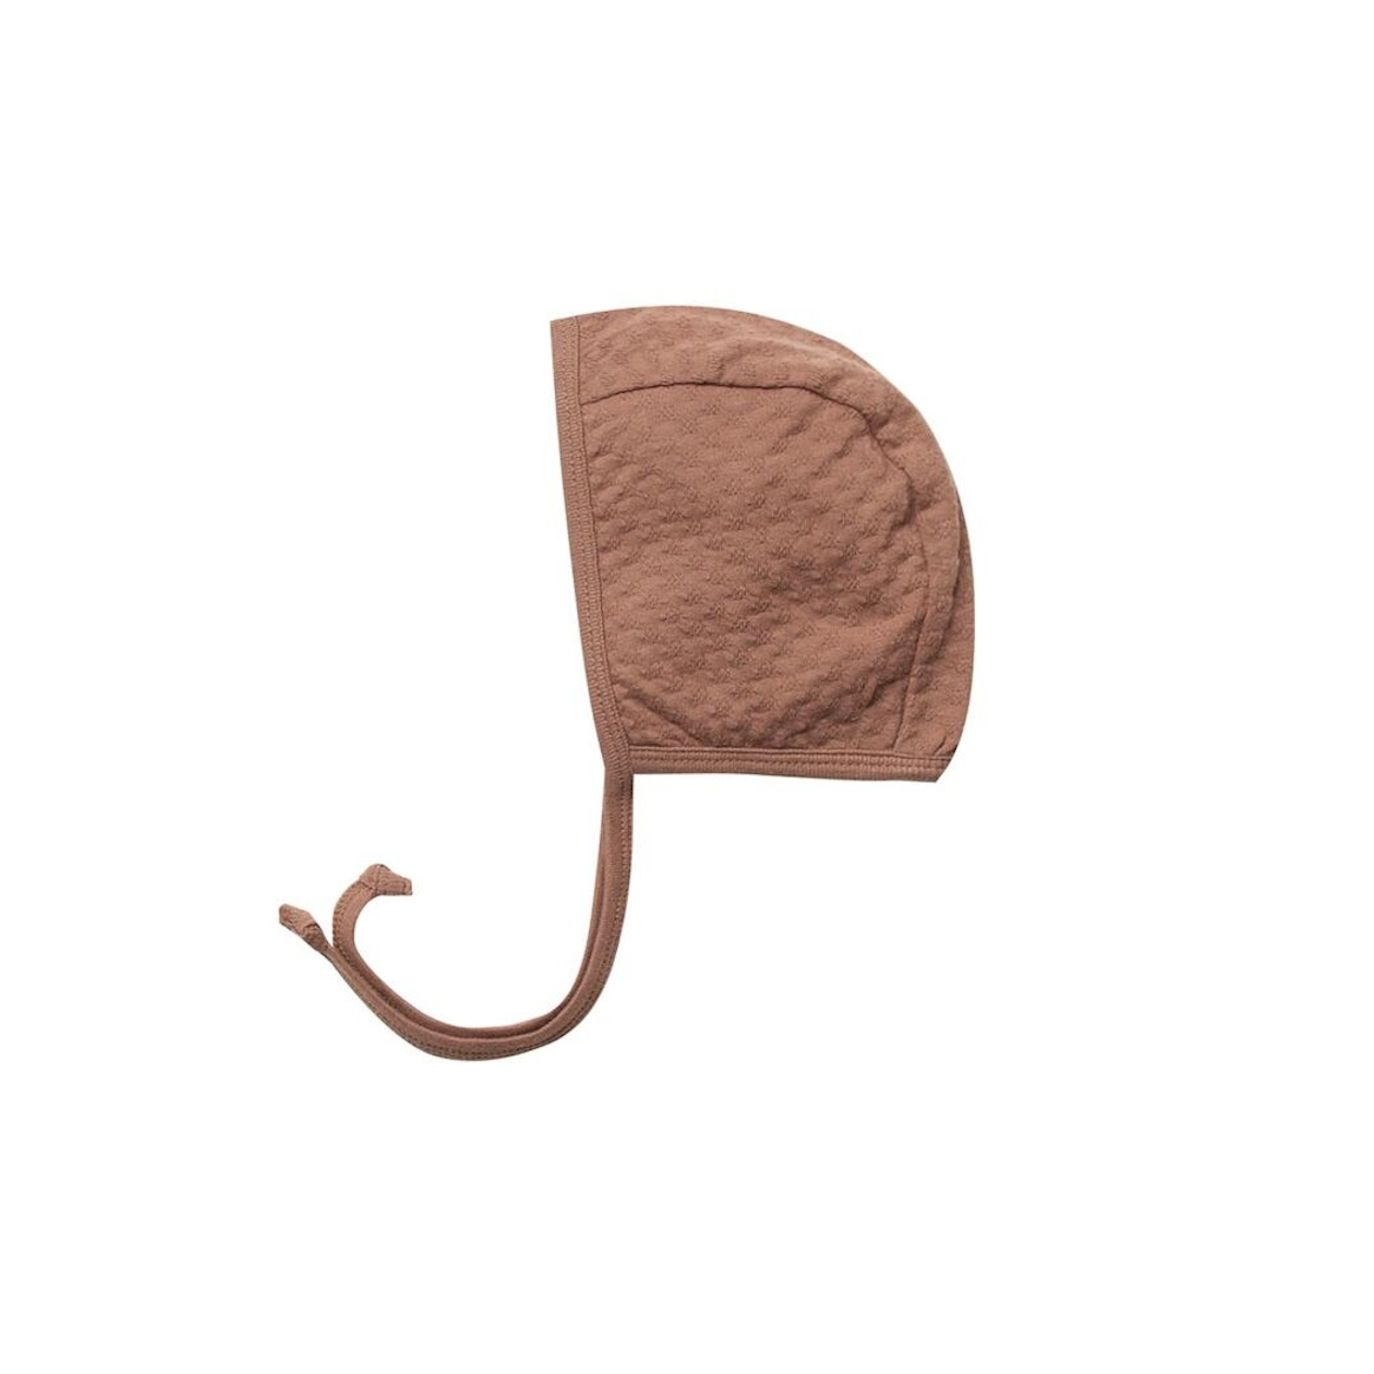 Quincy Mae Pointelle Baby Bonnet brown